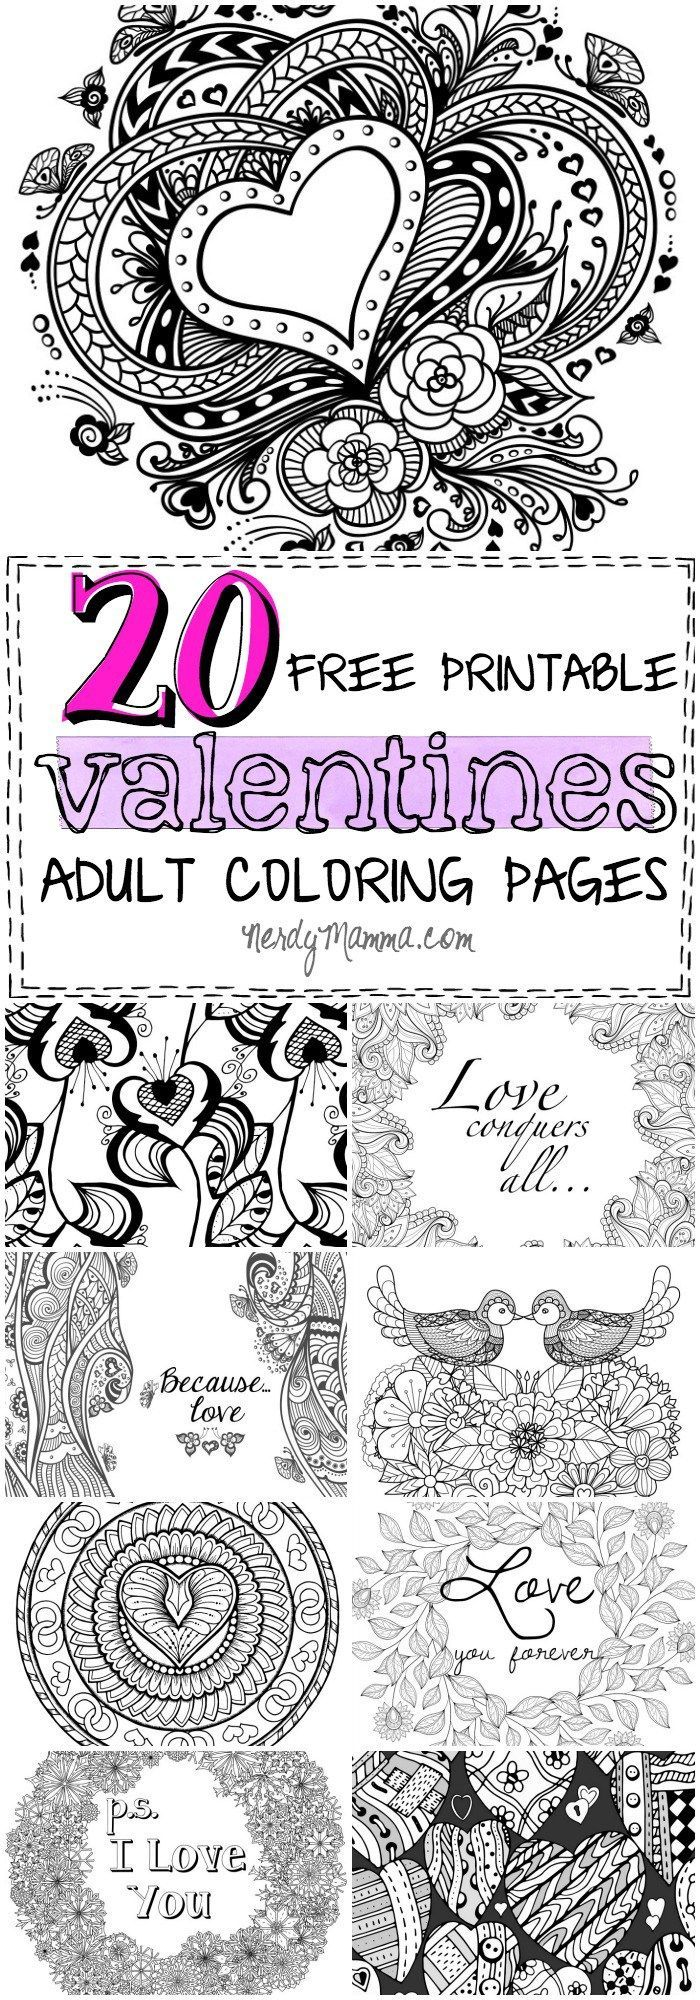 Valentines day mandala coloring pages - 20 Free Printable Valentines Adult Coloring Pages